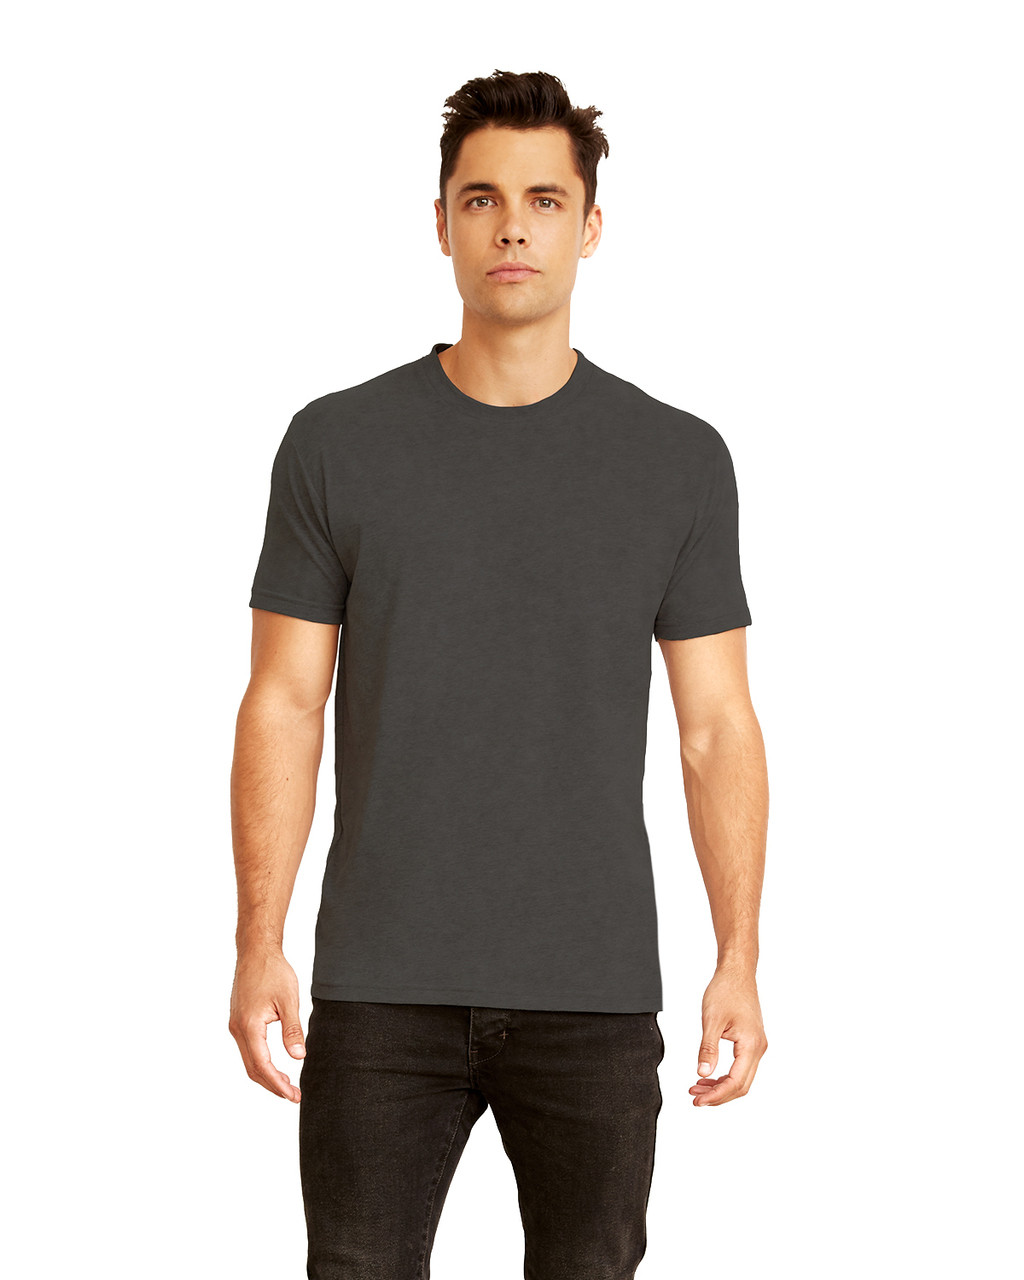 Heather Charcoal - 6410 Next Level Men's Premium Fitted Sueded T-Shirt | Blankclothing.ca